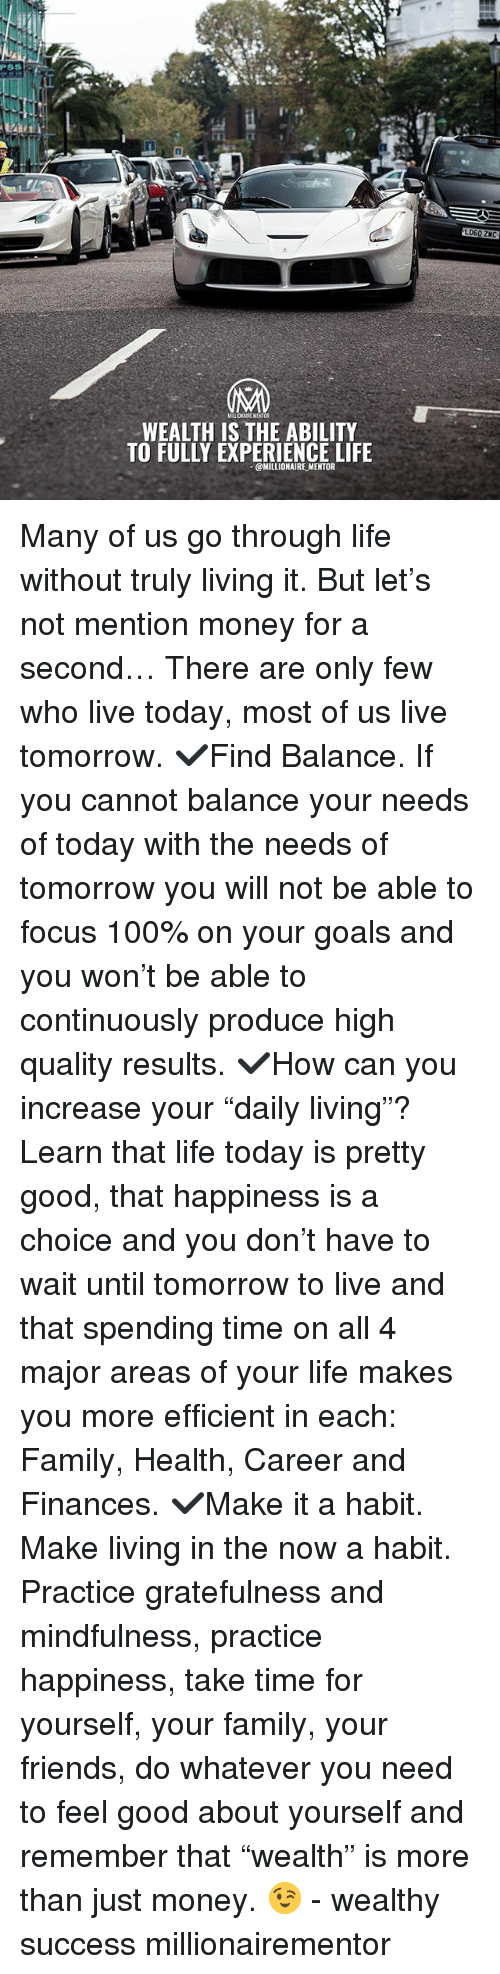 "Mindfulness: PSS  LD60 ZKC  WEALTH IS THE ABILITY  TO FULLY EXPERIENCE LIFE  @MILLIONAIRE MENTOR Many of us go through life without truly living it. But let's not mention money for a second… There are only few who live today, most of us live tomorrow. ✔️Find Balance. If you cannot balance your needs of today with the needs of tomorrow you will not be able to focus 100% on your goals and you won't be able to continuously produce high quality results. ✔️How can you increase your ""daily living""? Learn that life today is pretty good, that happiness is a choice and you don't have to wait until tomorrow to live and that spending time on all 4 major areas of your life makes you more efficient in each: Family, Health, Career and Finances. ✔️Make it a habit. Make living in the now a habit. Practice gratefulness and mindfulness, practice happiness, take time for yourself, your family, your friends, do whatever you need to feel good about yourself and remember that ""wealth"" is more than just money. 😉 - wealthy success millionairementor"